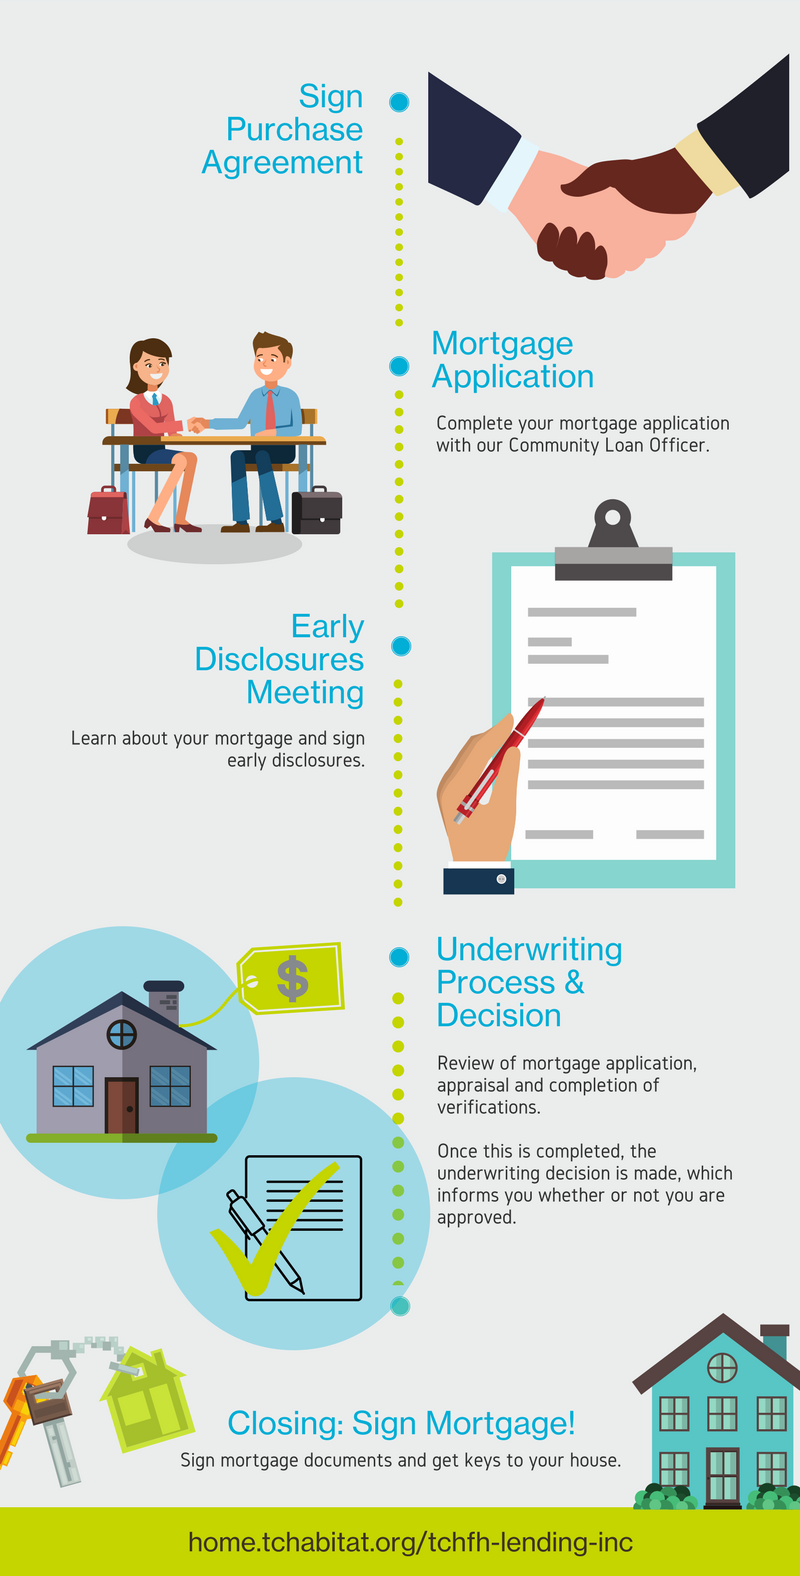 mortgage process infographic cropped.png